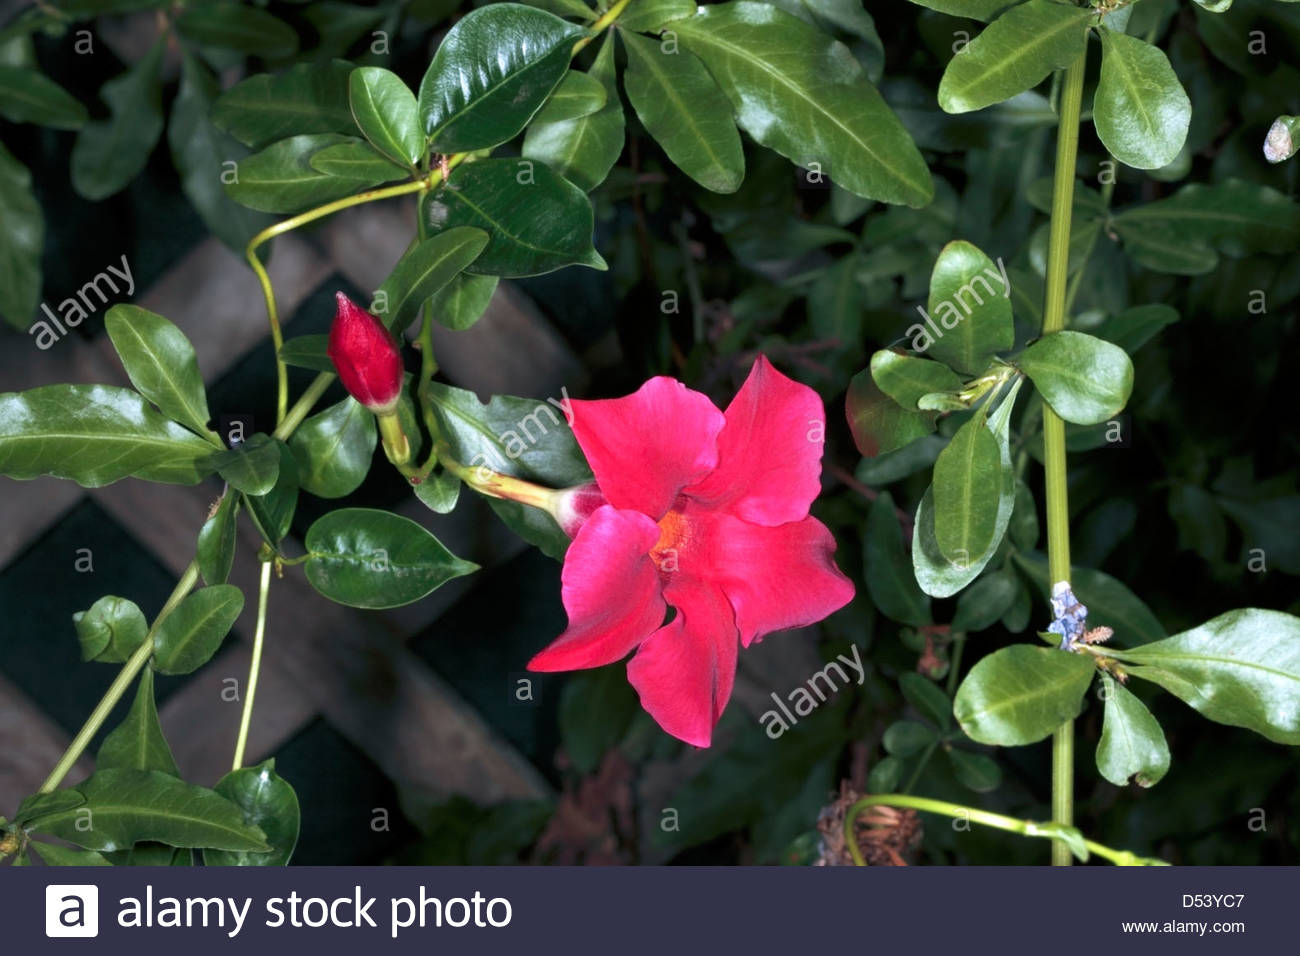 Mandevilla Stock Photos & Mandevilla Stock Images.